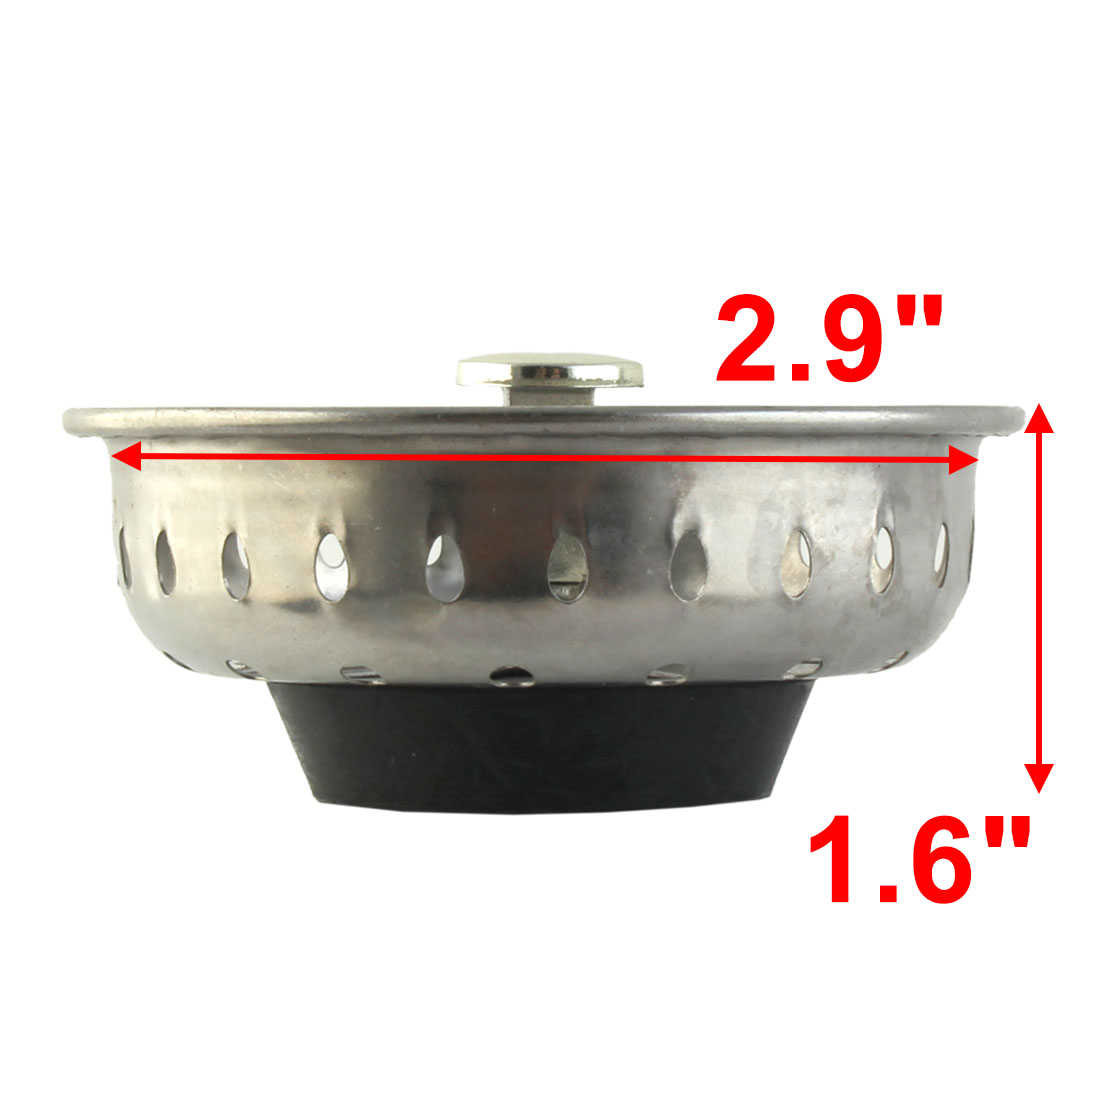 Unique Bargains Kitchen Garbage Sink Basin Stopper Filter Strainer Silver Tone for Home Essential